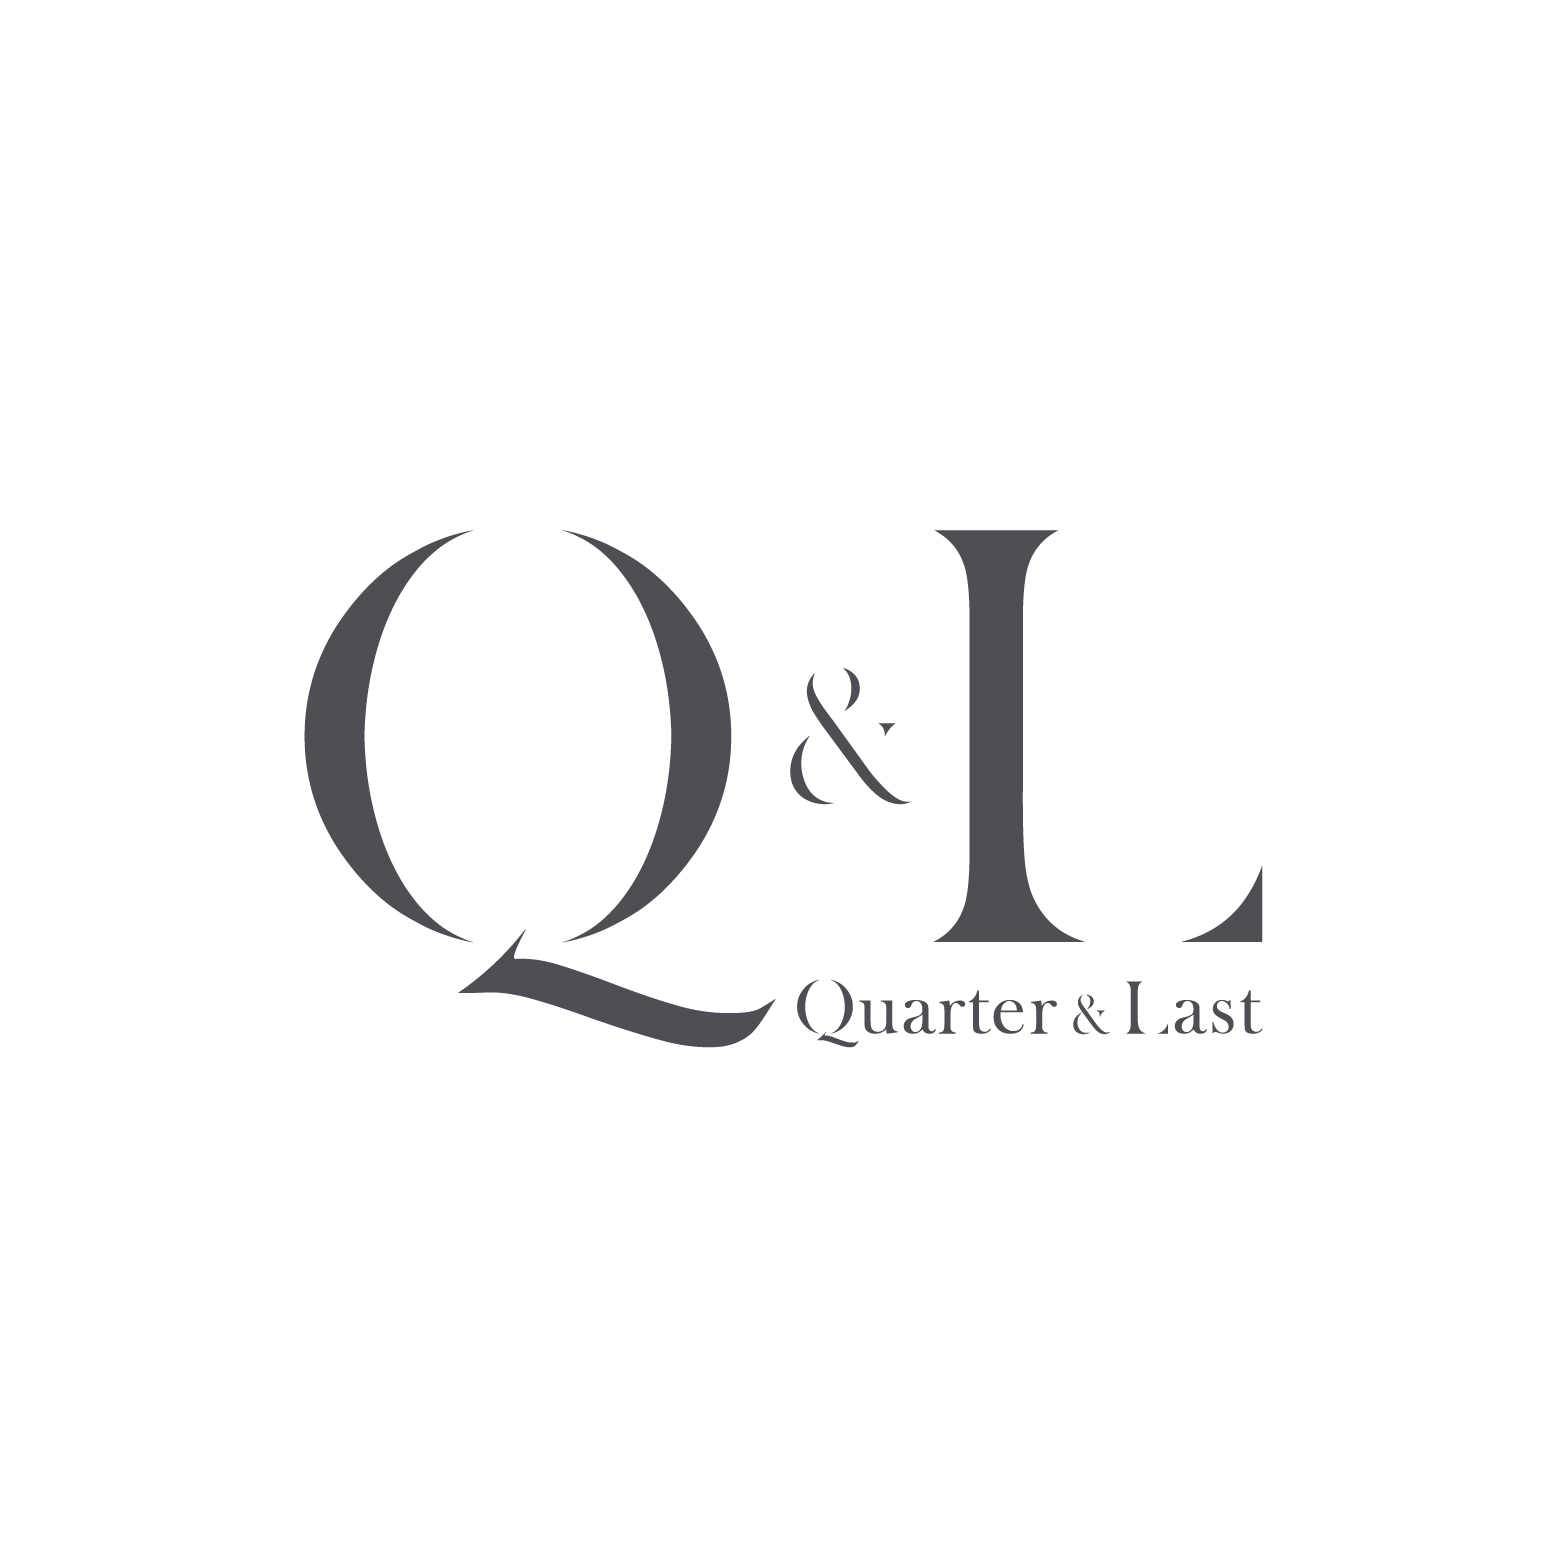 Read Quarter & Last Reviews